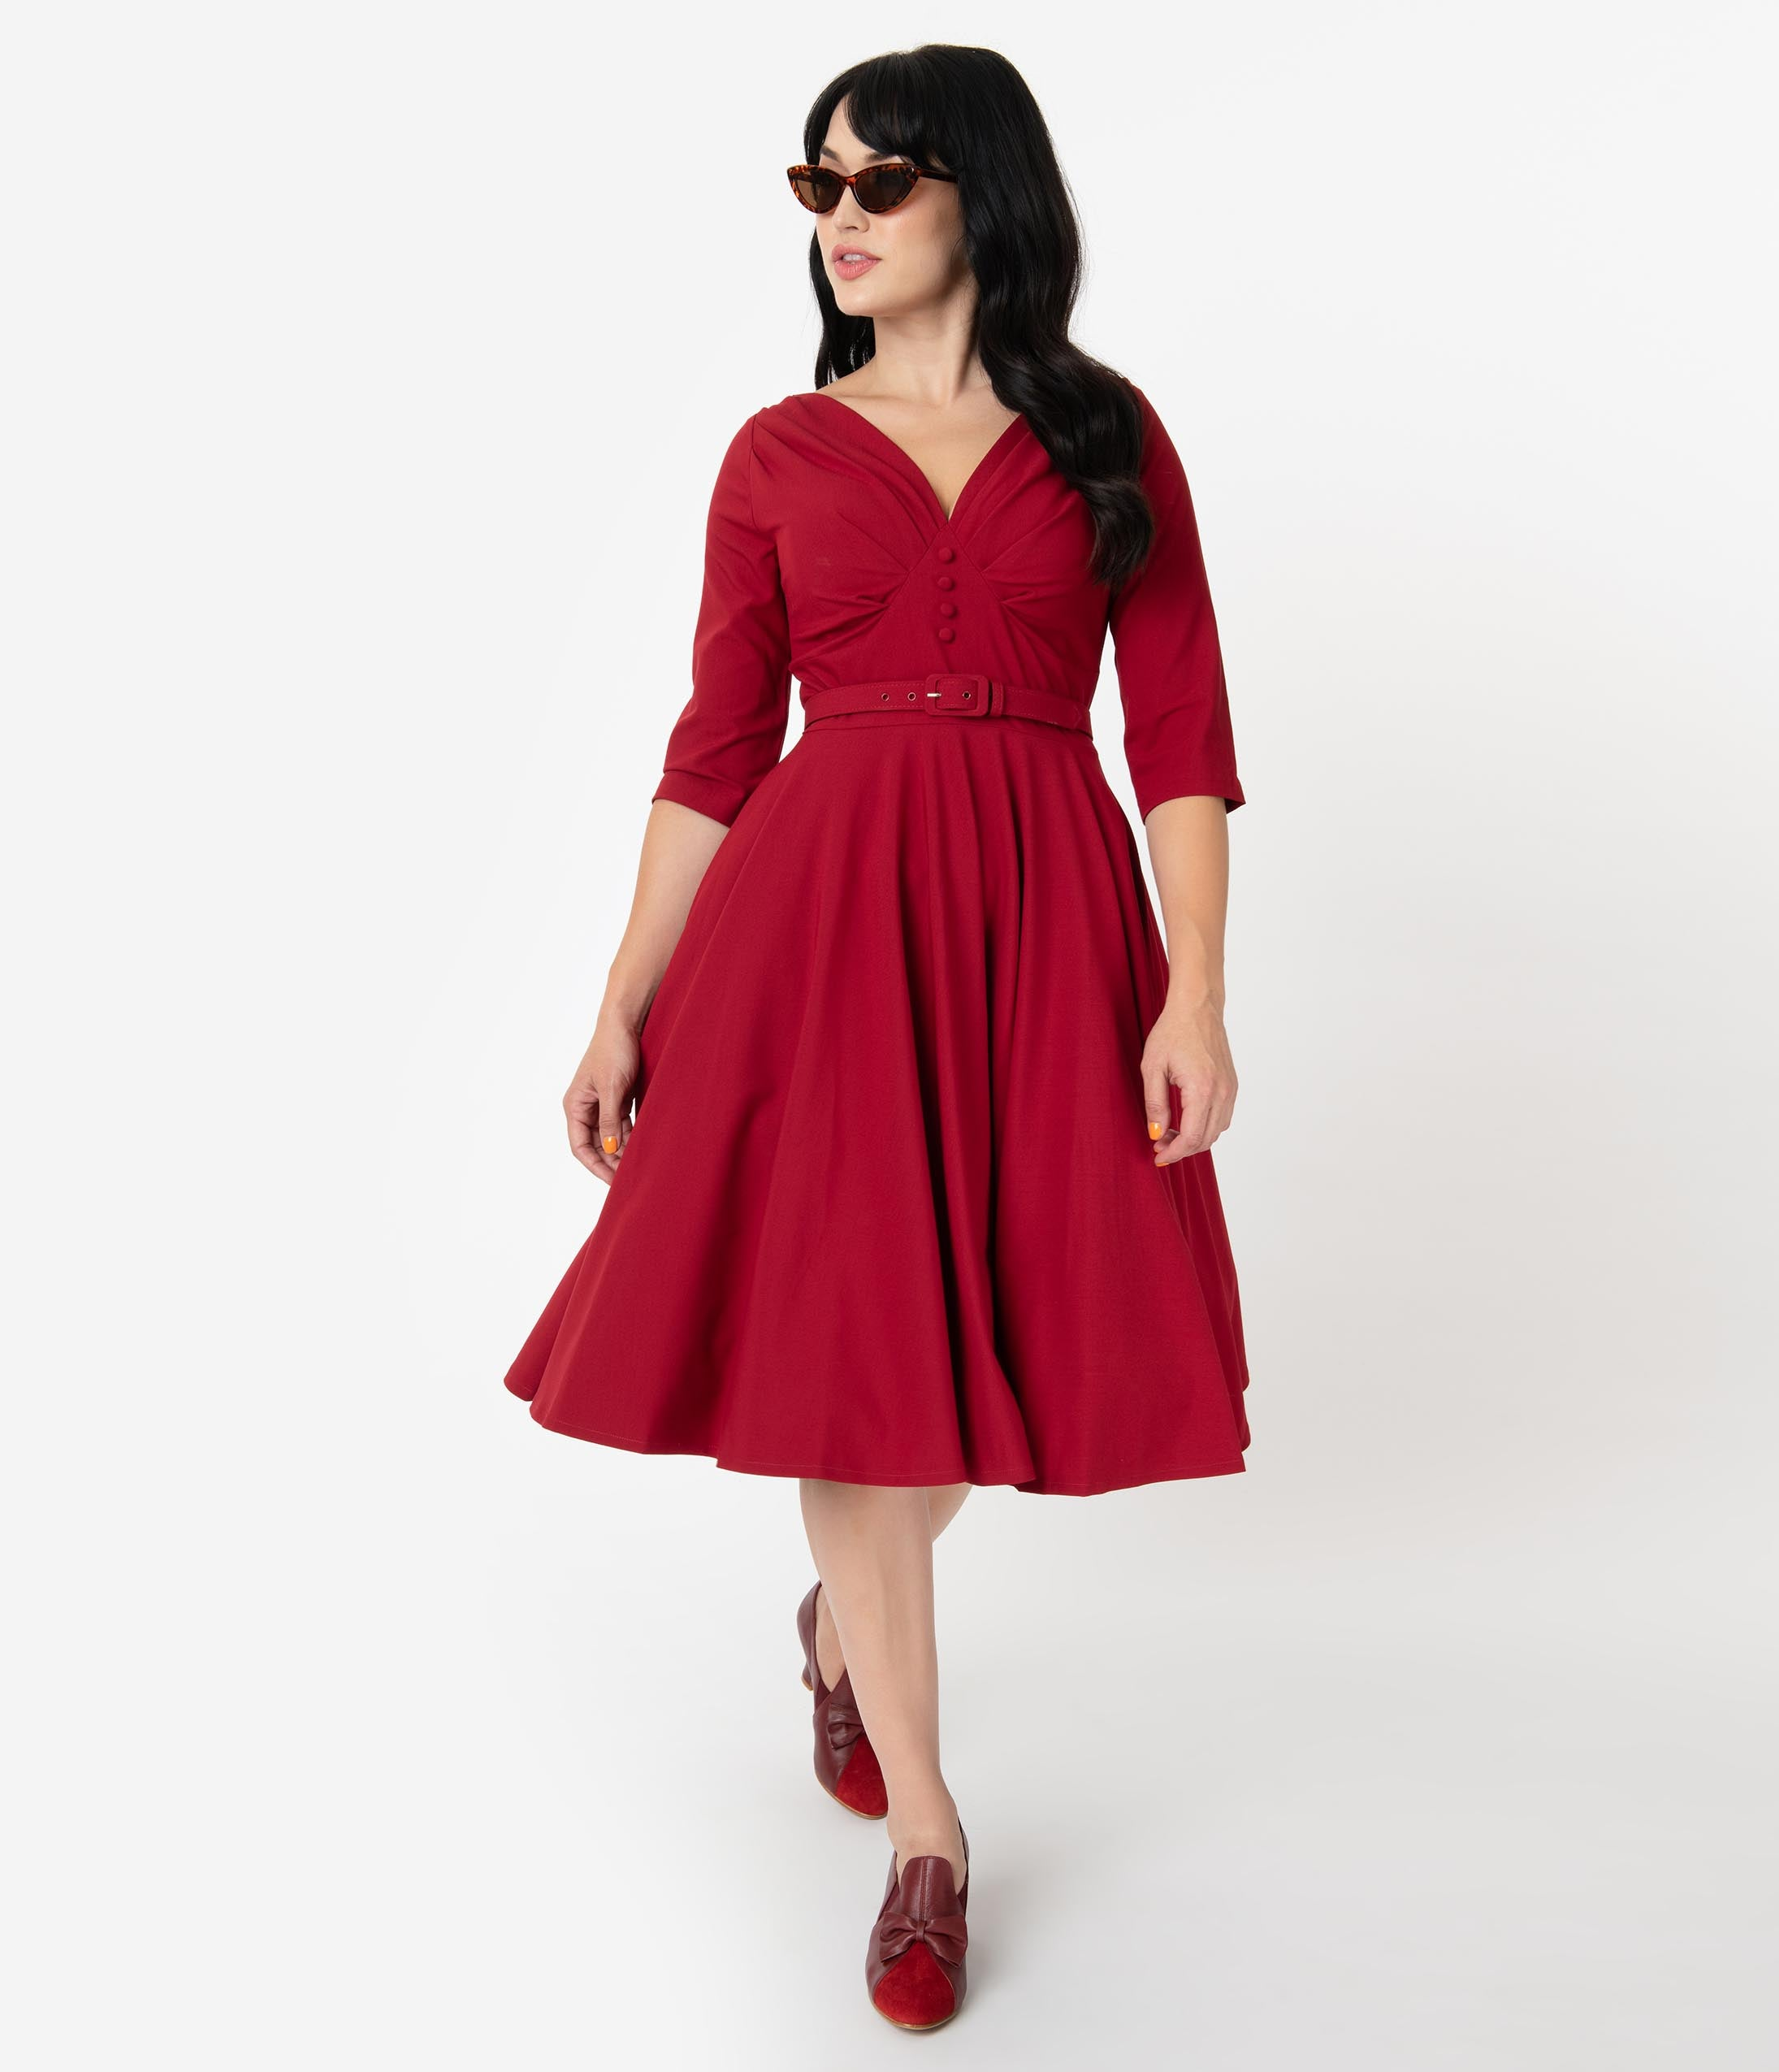 1950s Dresses, 50s Dresses | 1950s Style Dresses Vintage Diva 1950S Style Bordeaux Red Jane Swing Dress $132.00 AT vintagedancer.com